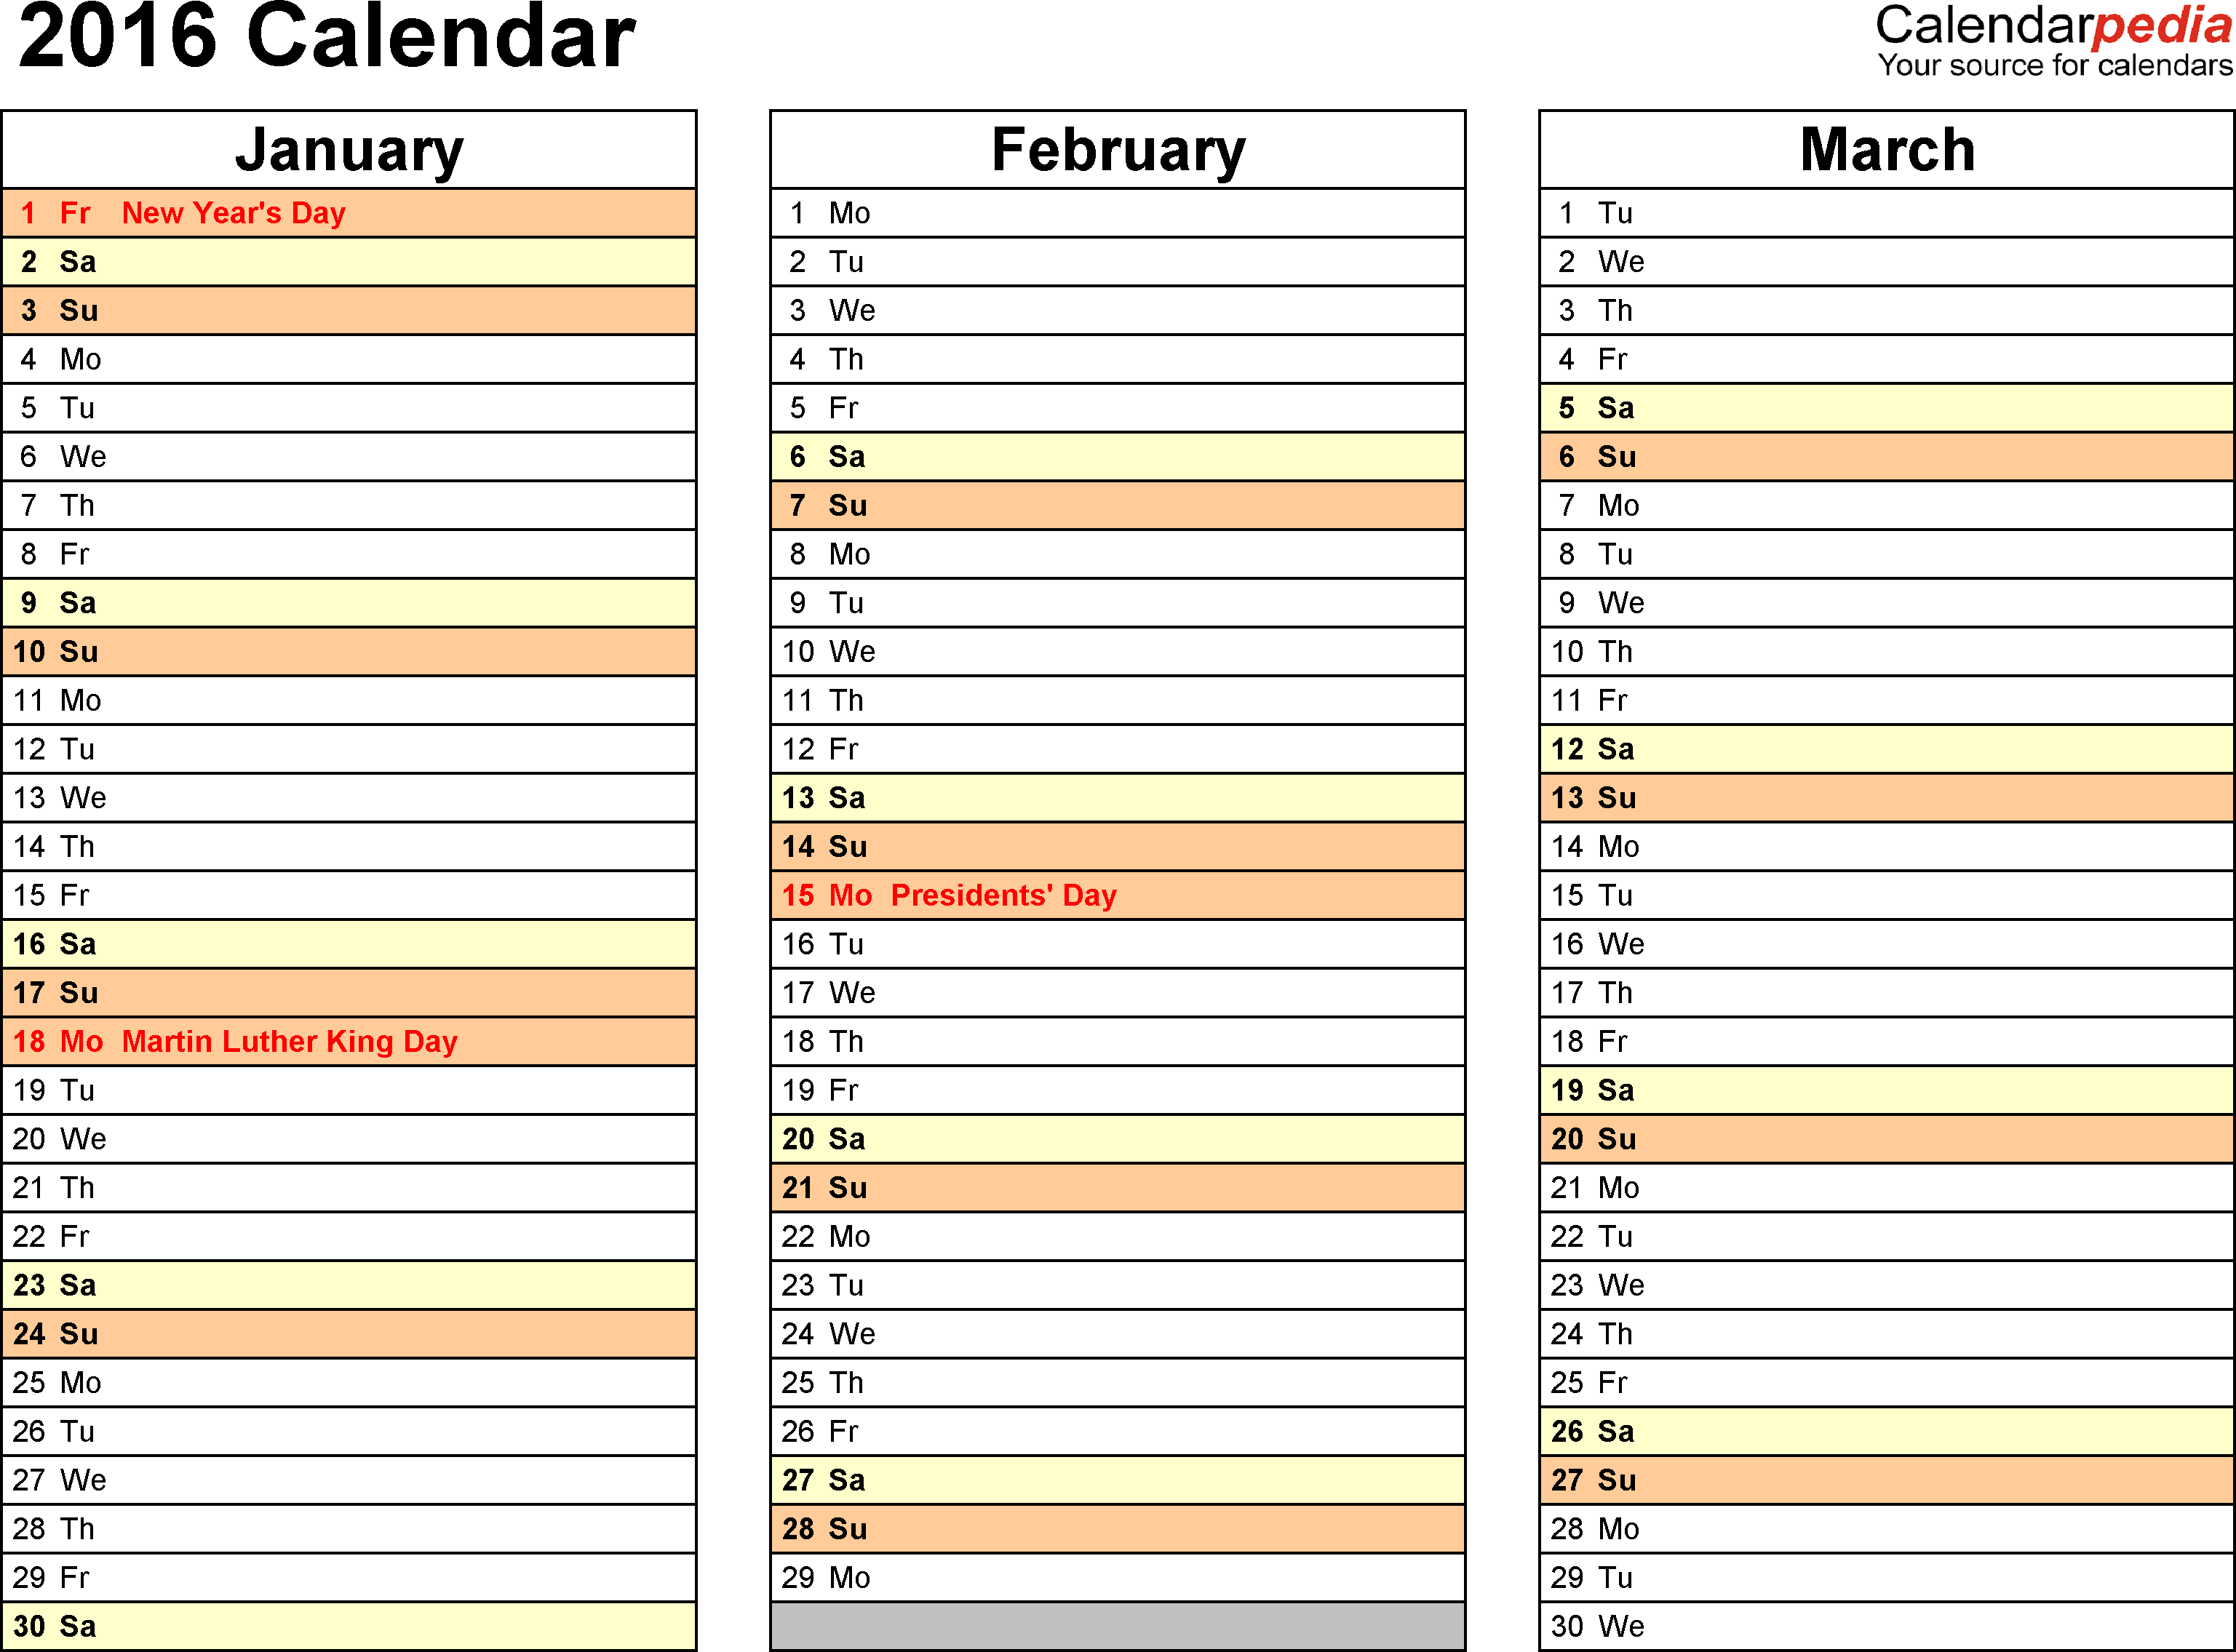 Template 6: 2016 Calendar for PDF, months horizontally, 4 pages, landscape orientation